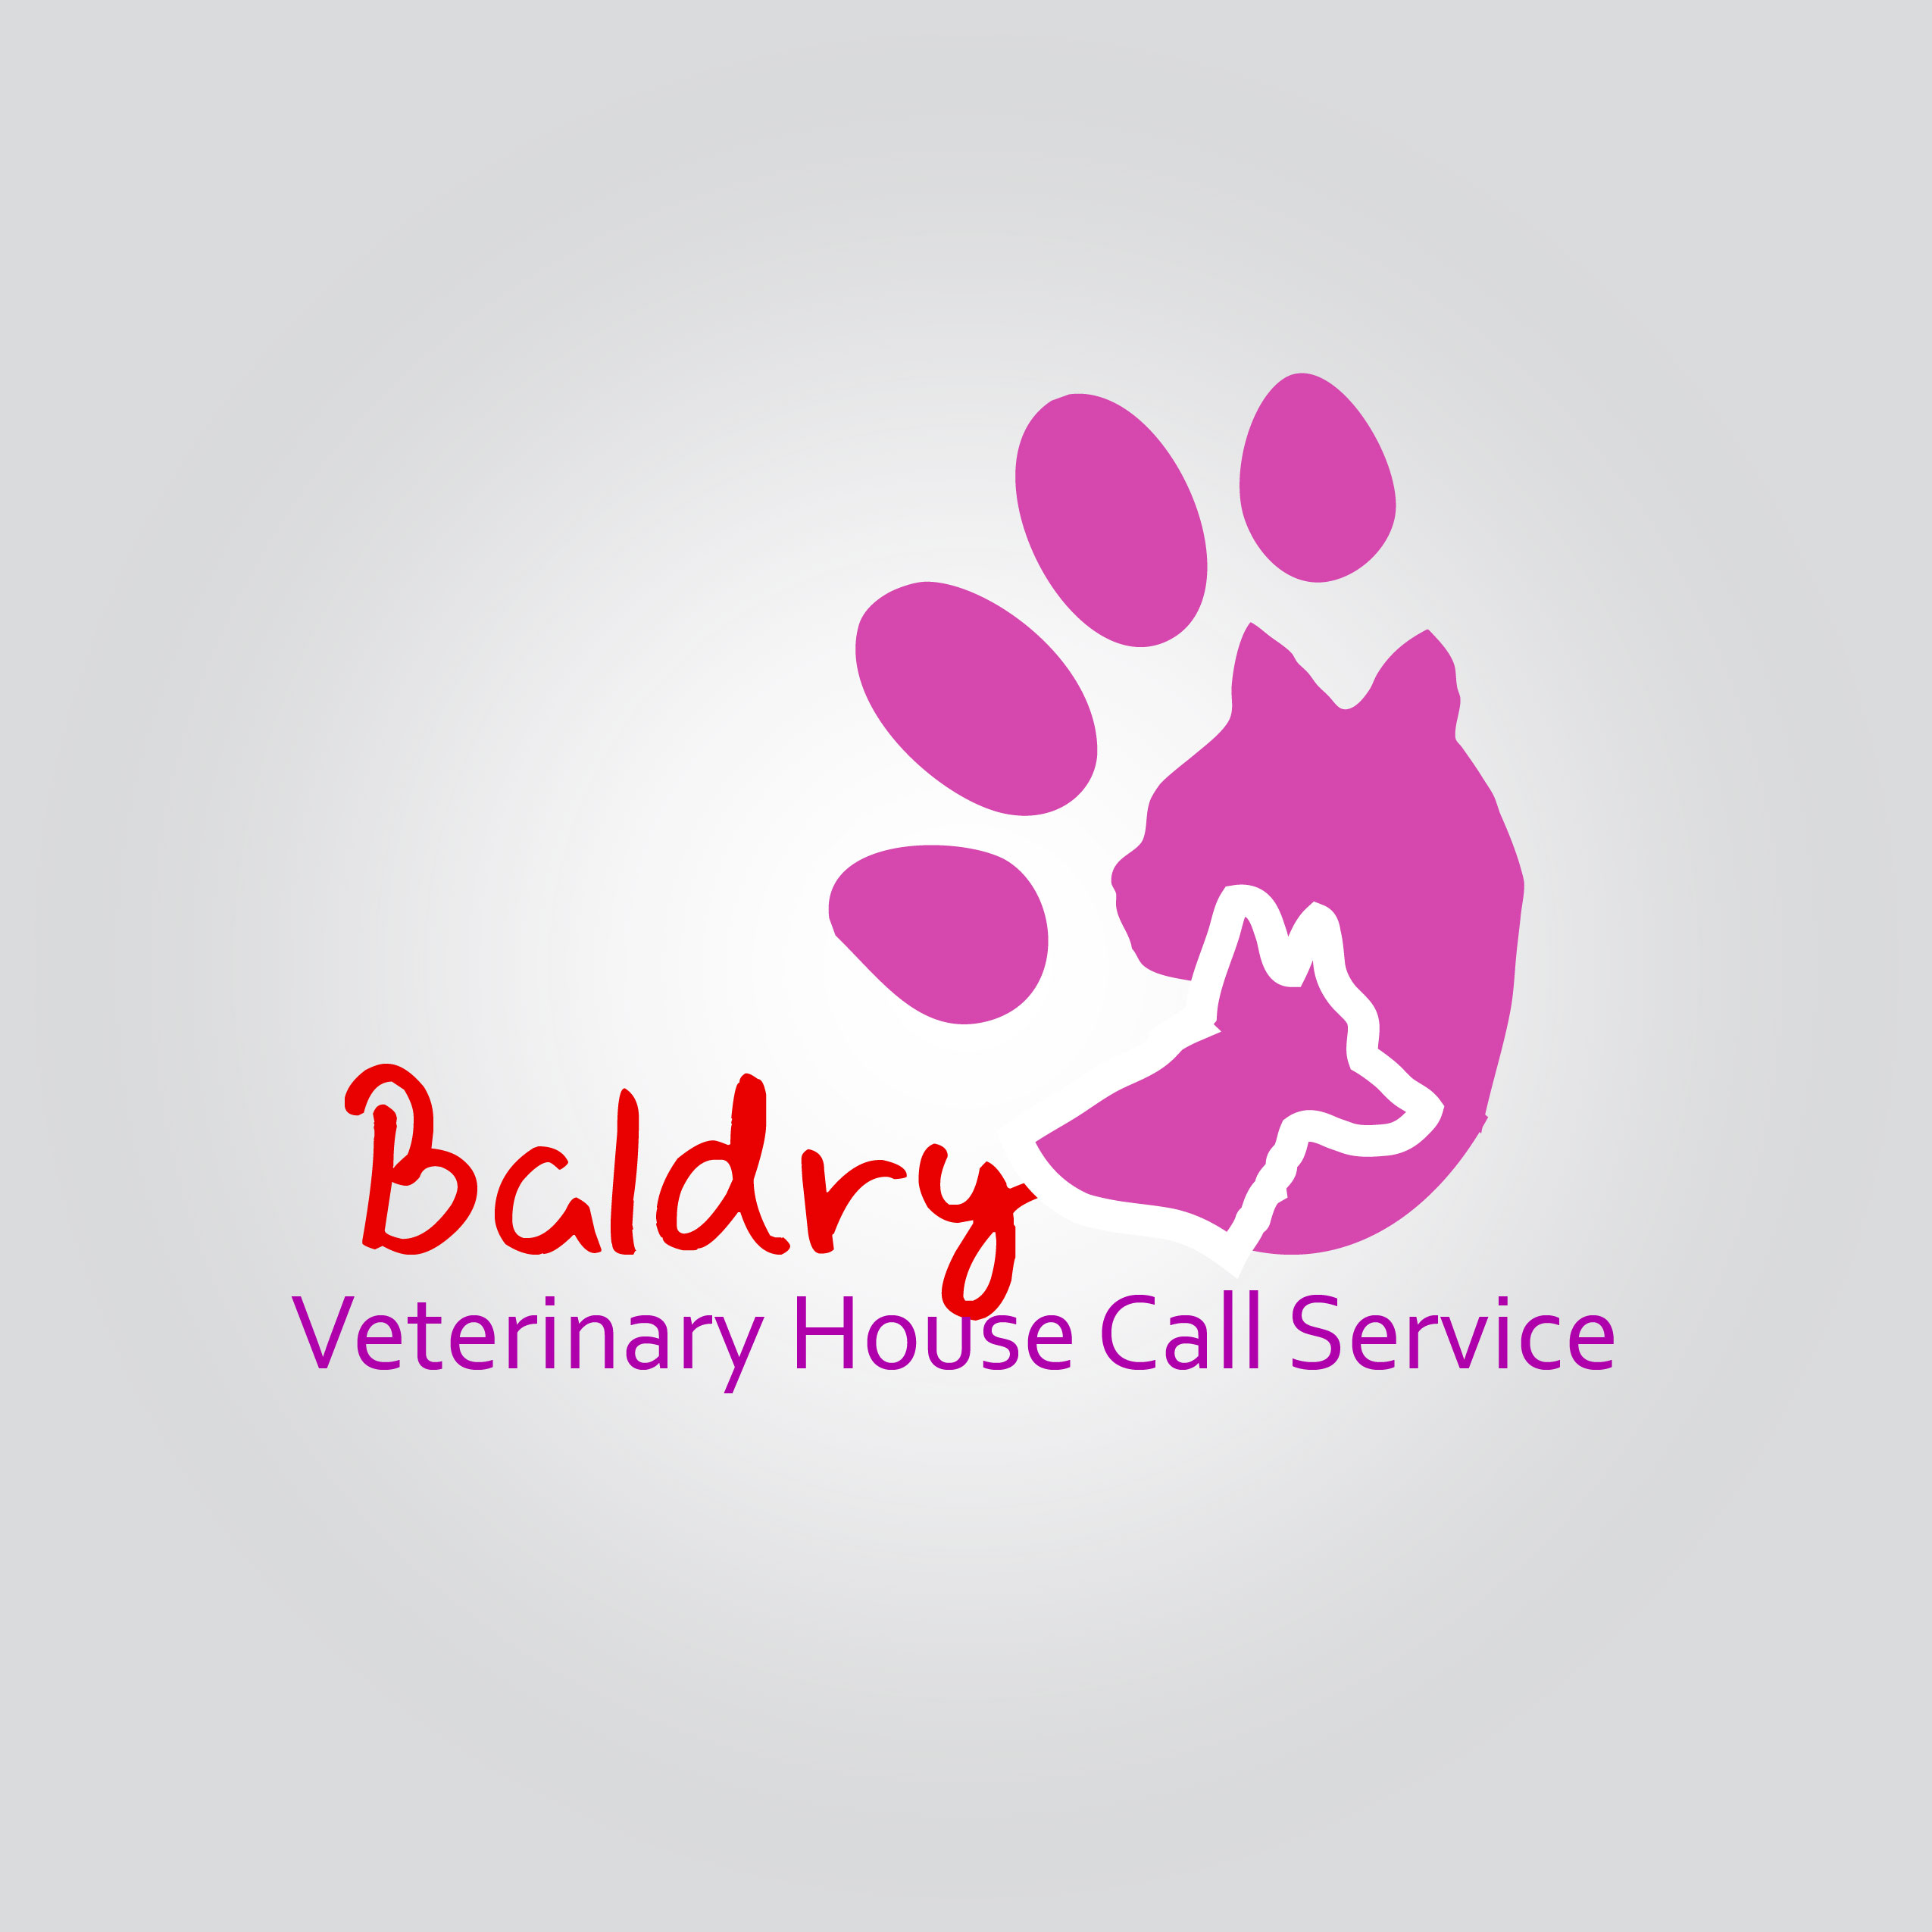 Logo Design by Private User - Entry No. 41 in the Logo Design Contest Captivating Logo Design for Baldry Veterinary House Call Service.